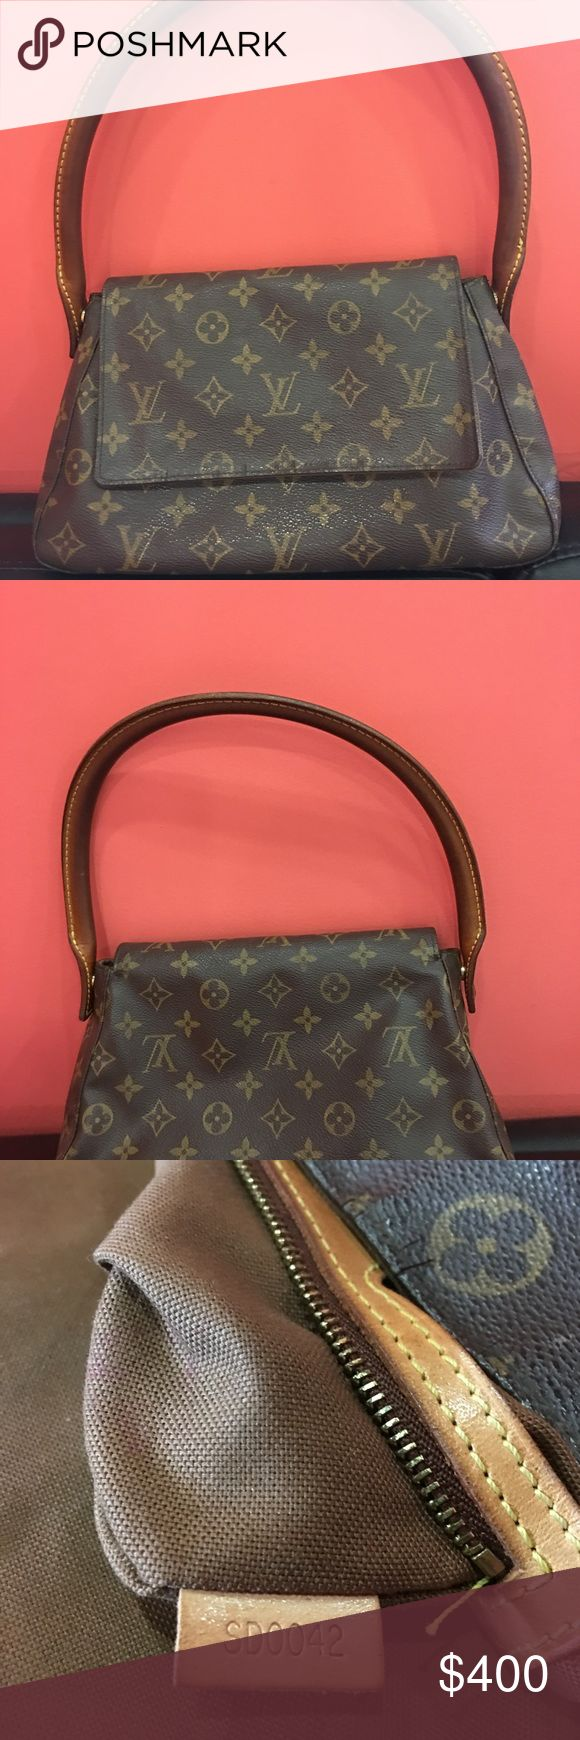 Louis Vuitton small handbag 6.7 inch bag length. Coated canvas magnetic closure. Gently used. Louis Vuitton Bags Mini Bags